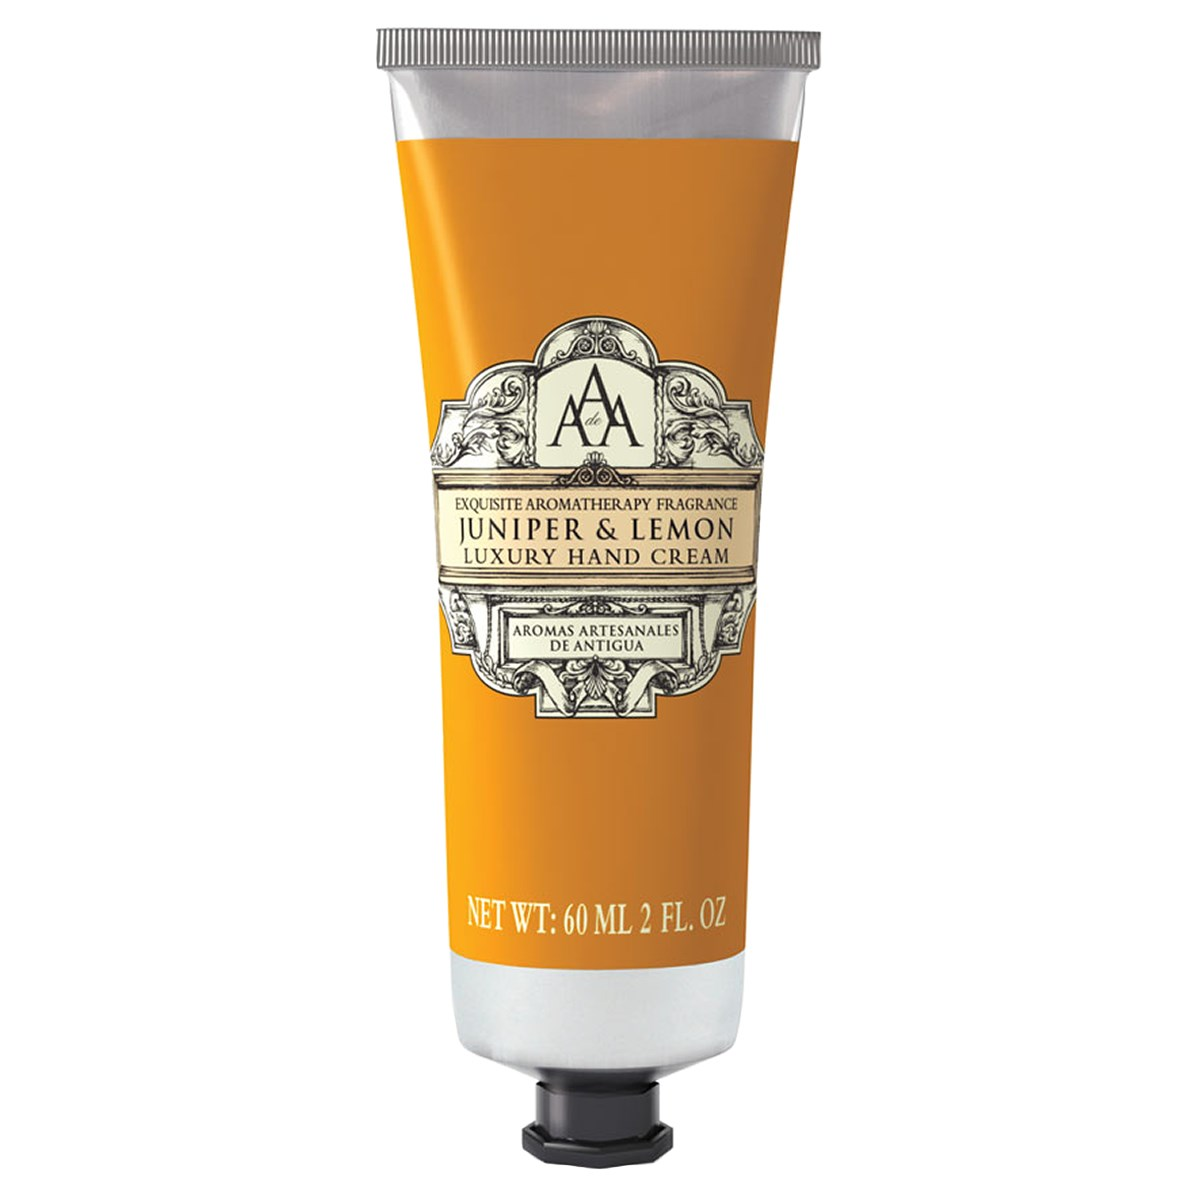 Aromas Artesanales De Antigua Juniper & Lemon Luxury Hand Cream